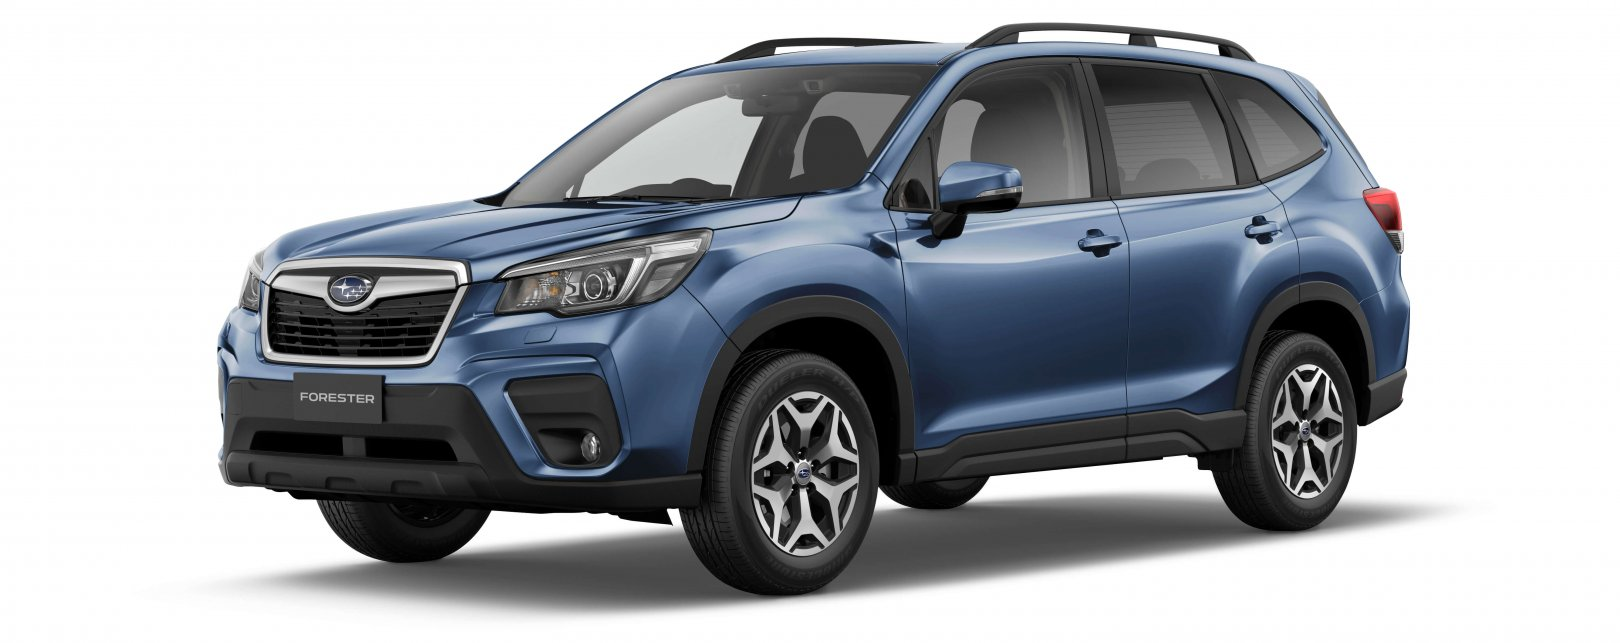 Forester 2.5 Sport 2019 HorizonBluePearl